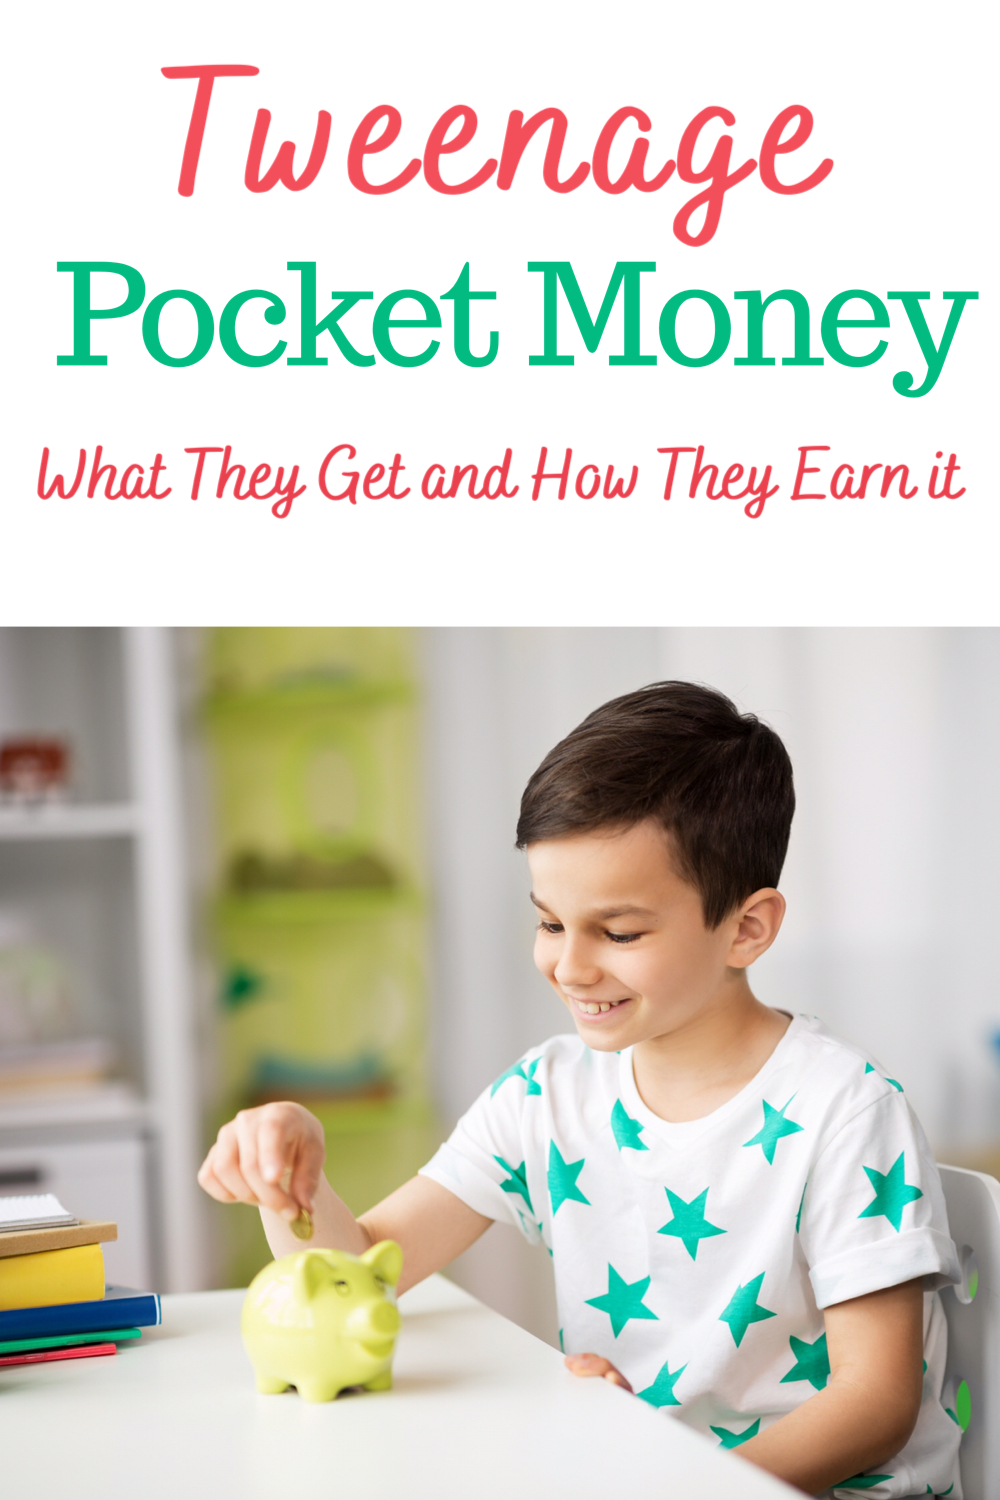 Tween age pocket money: what they get and how they earn it